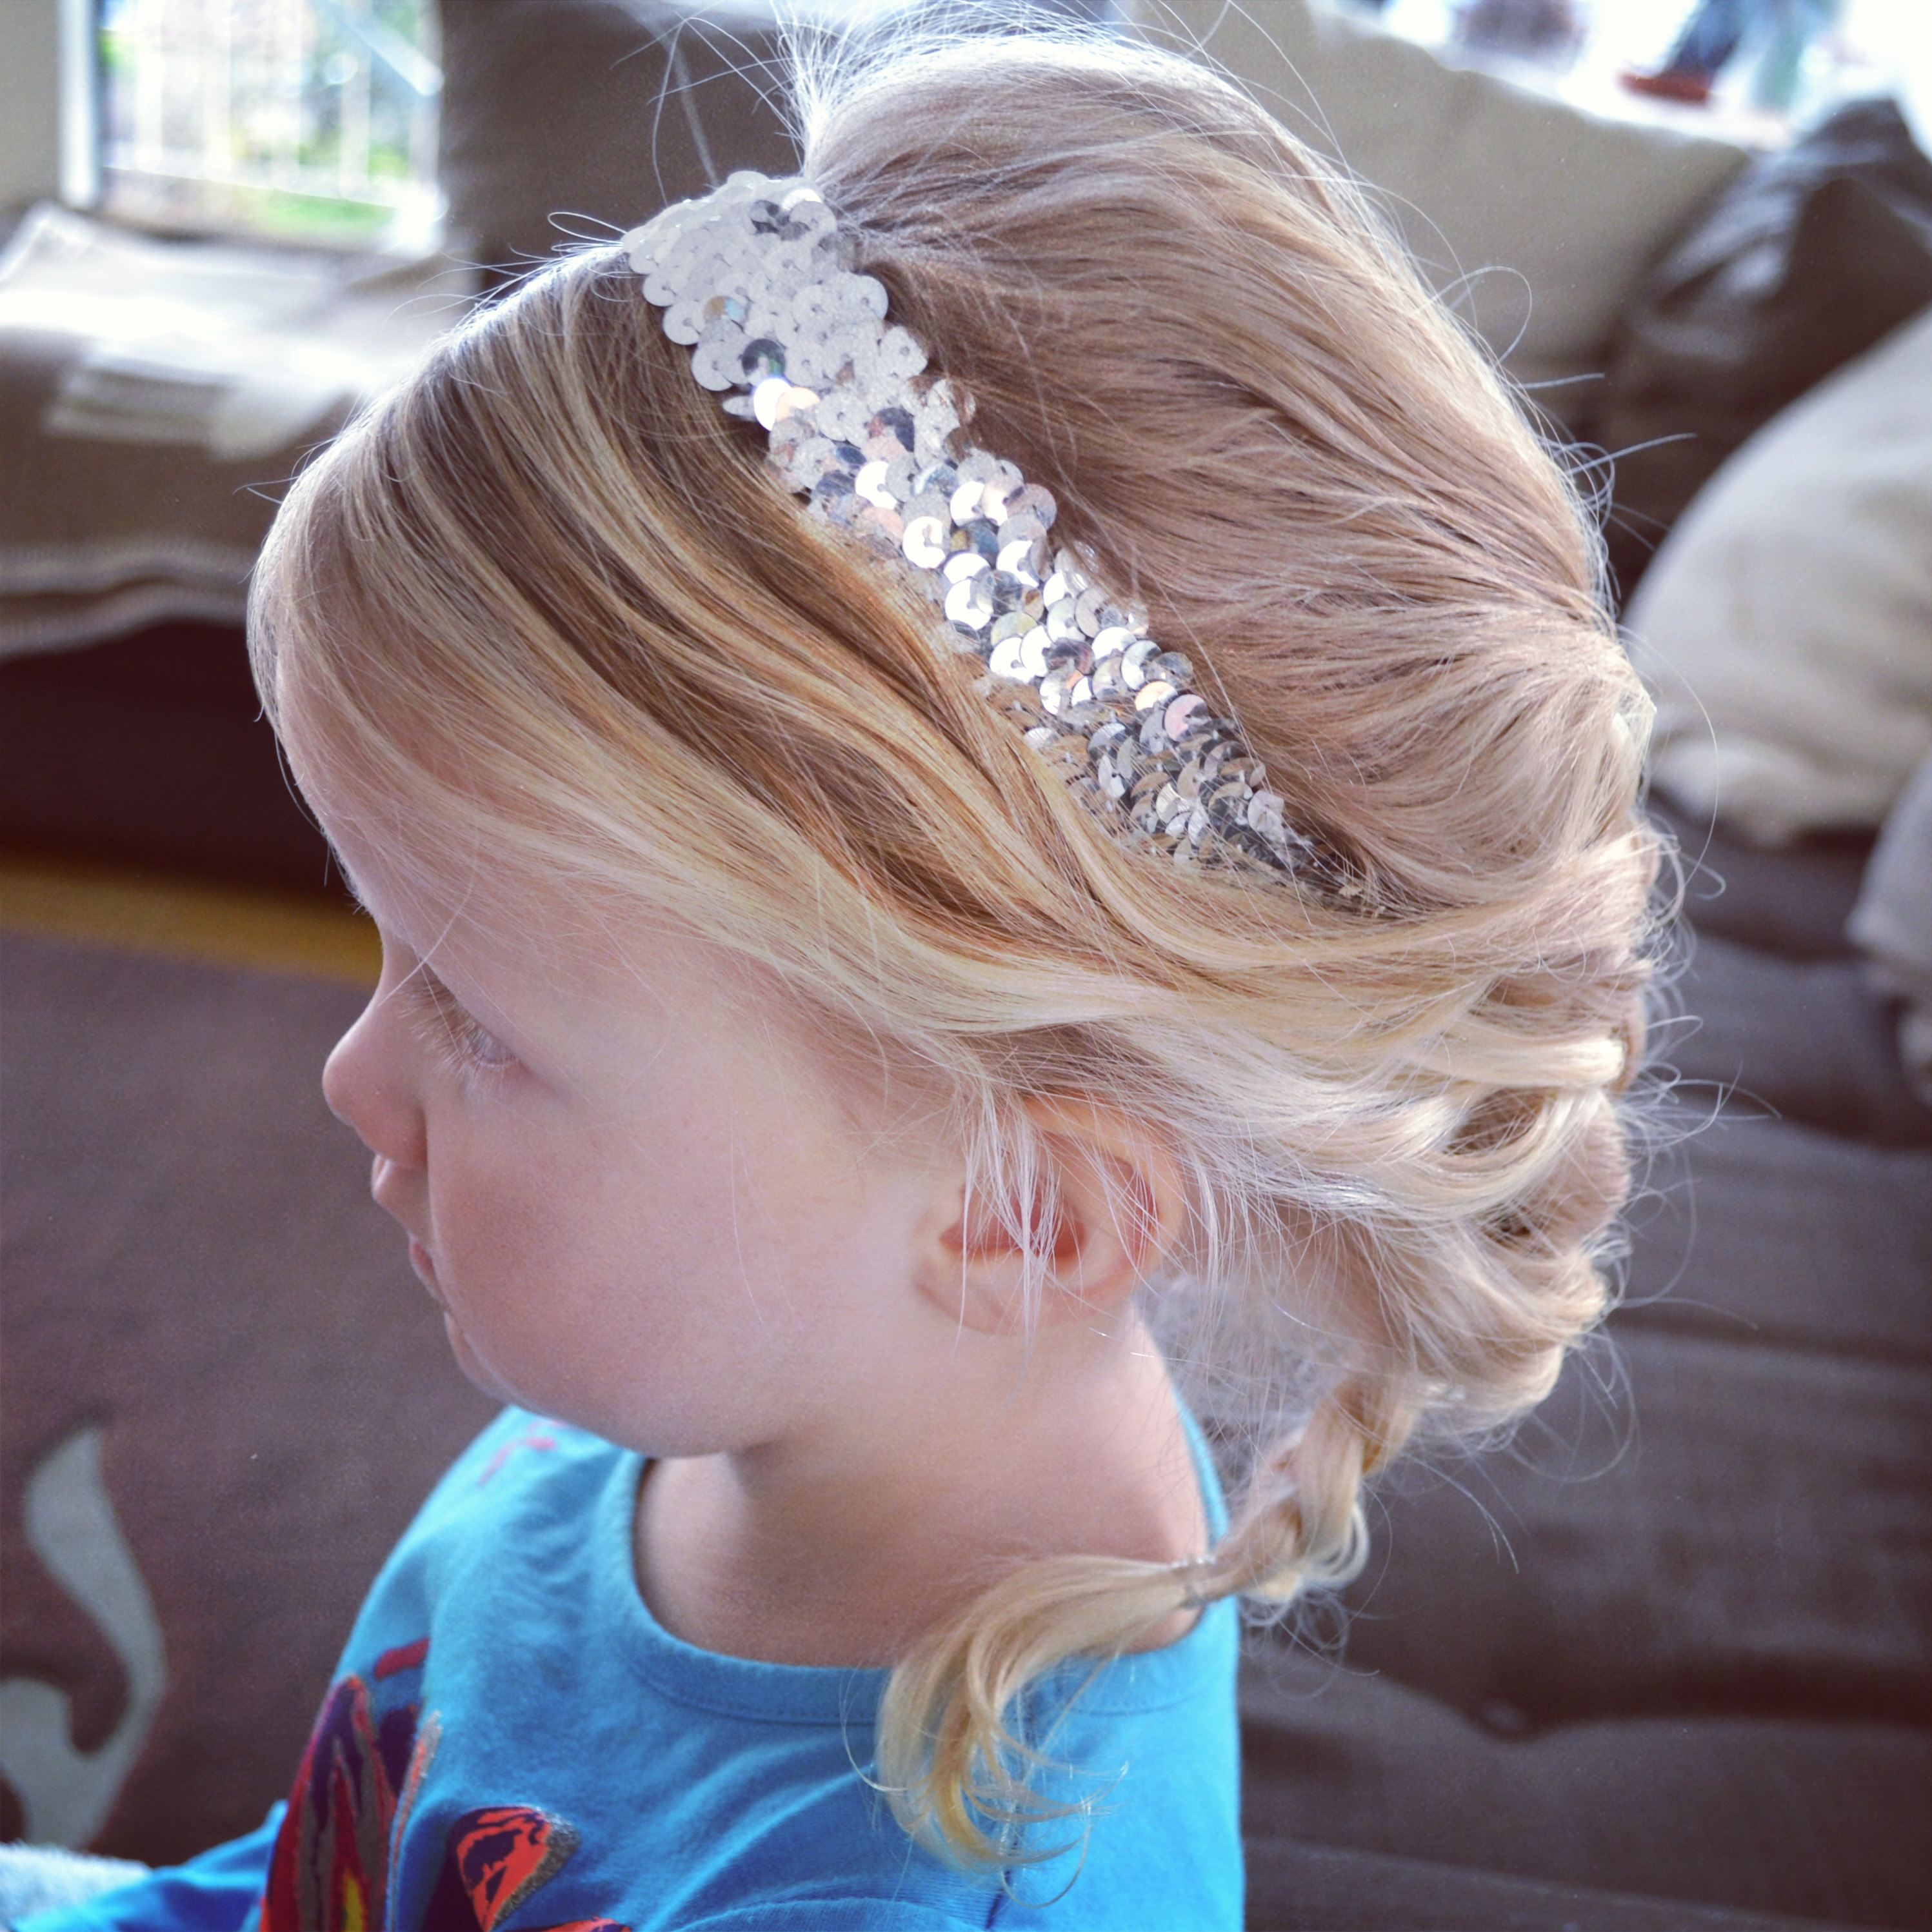 Braid inspired by young Elsa's hair in Disney's frozen